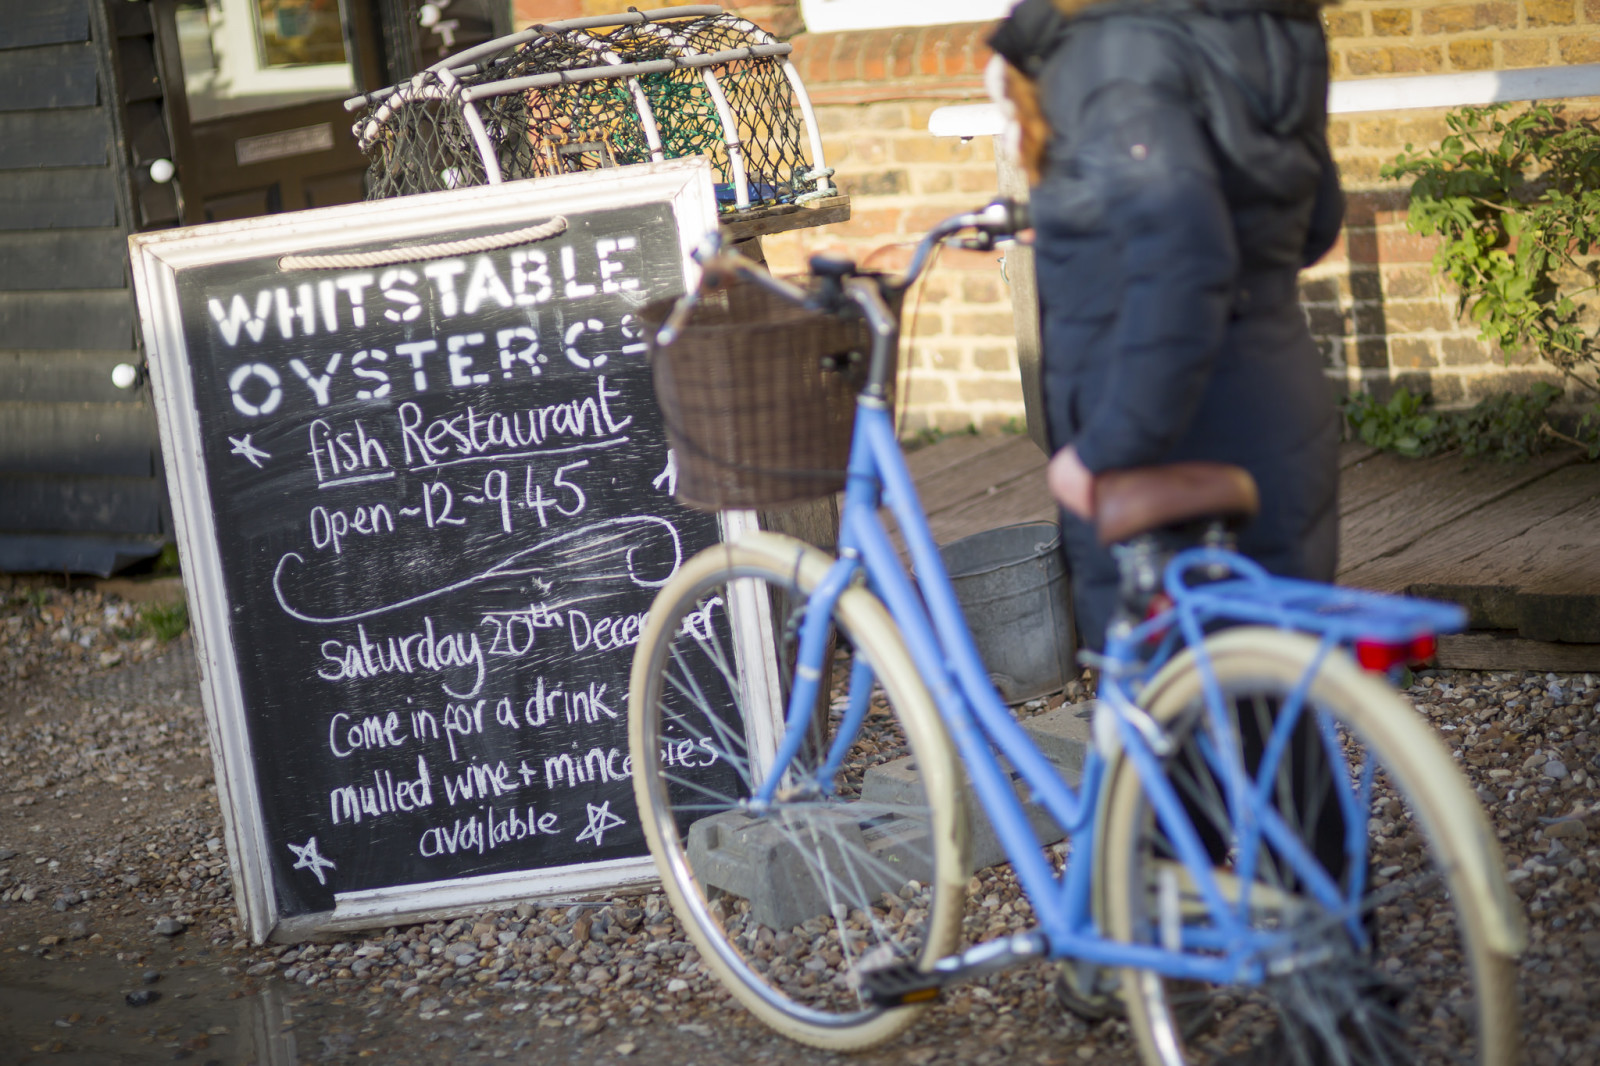 Bicycle by Whitstable restaurant